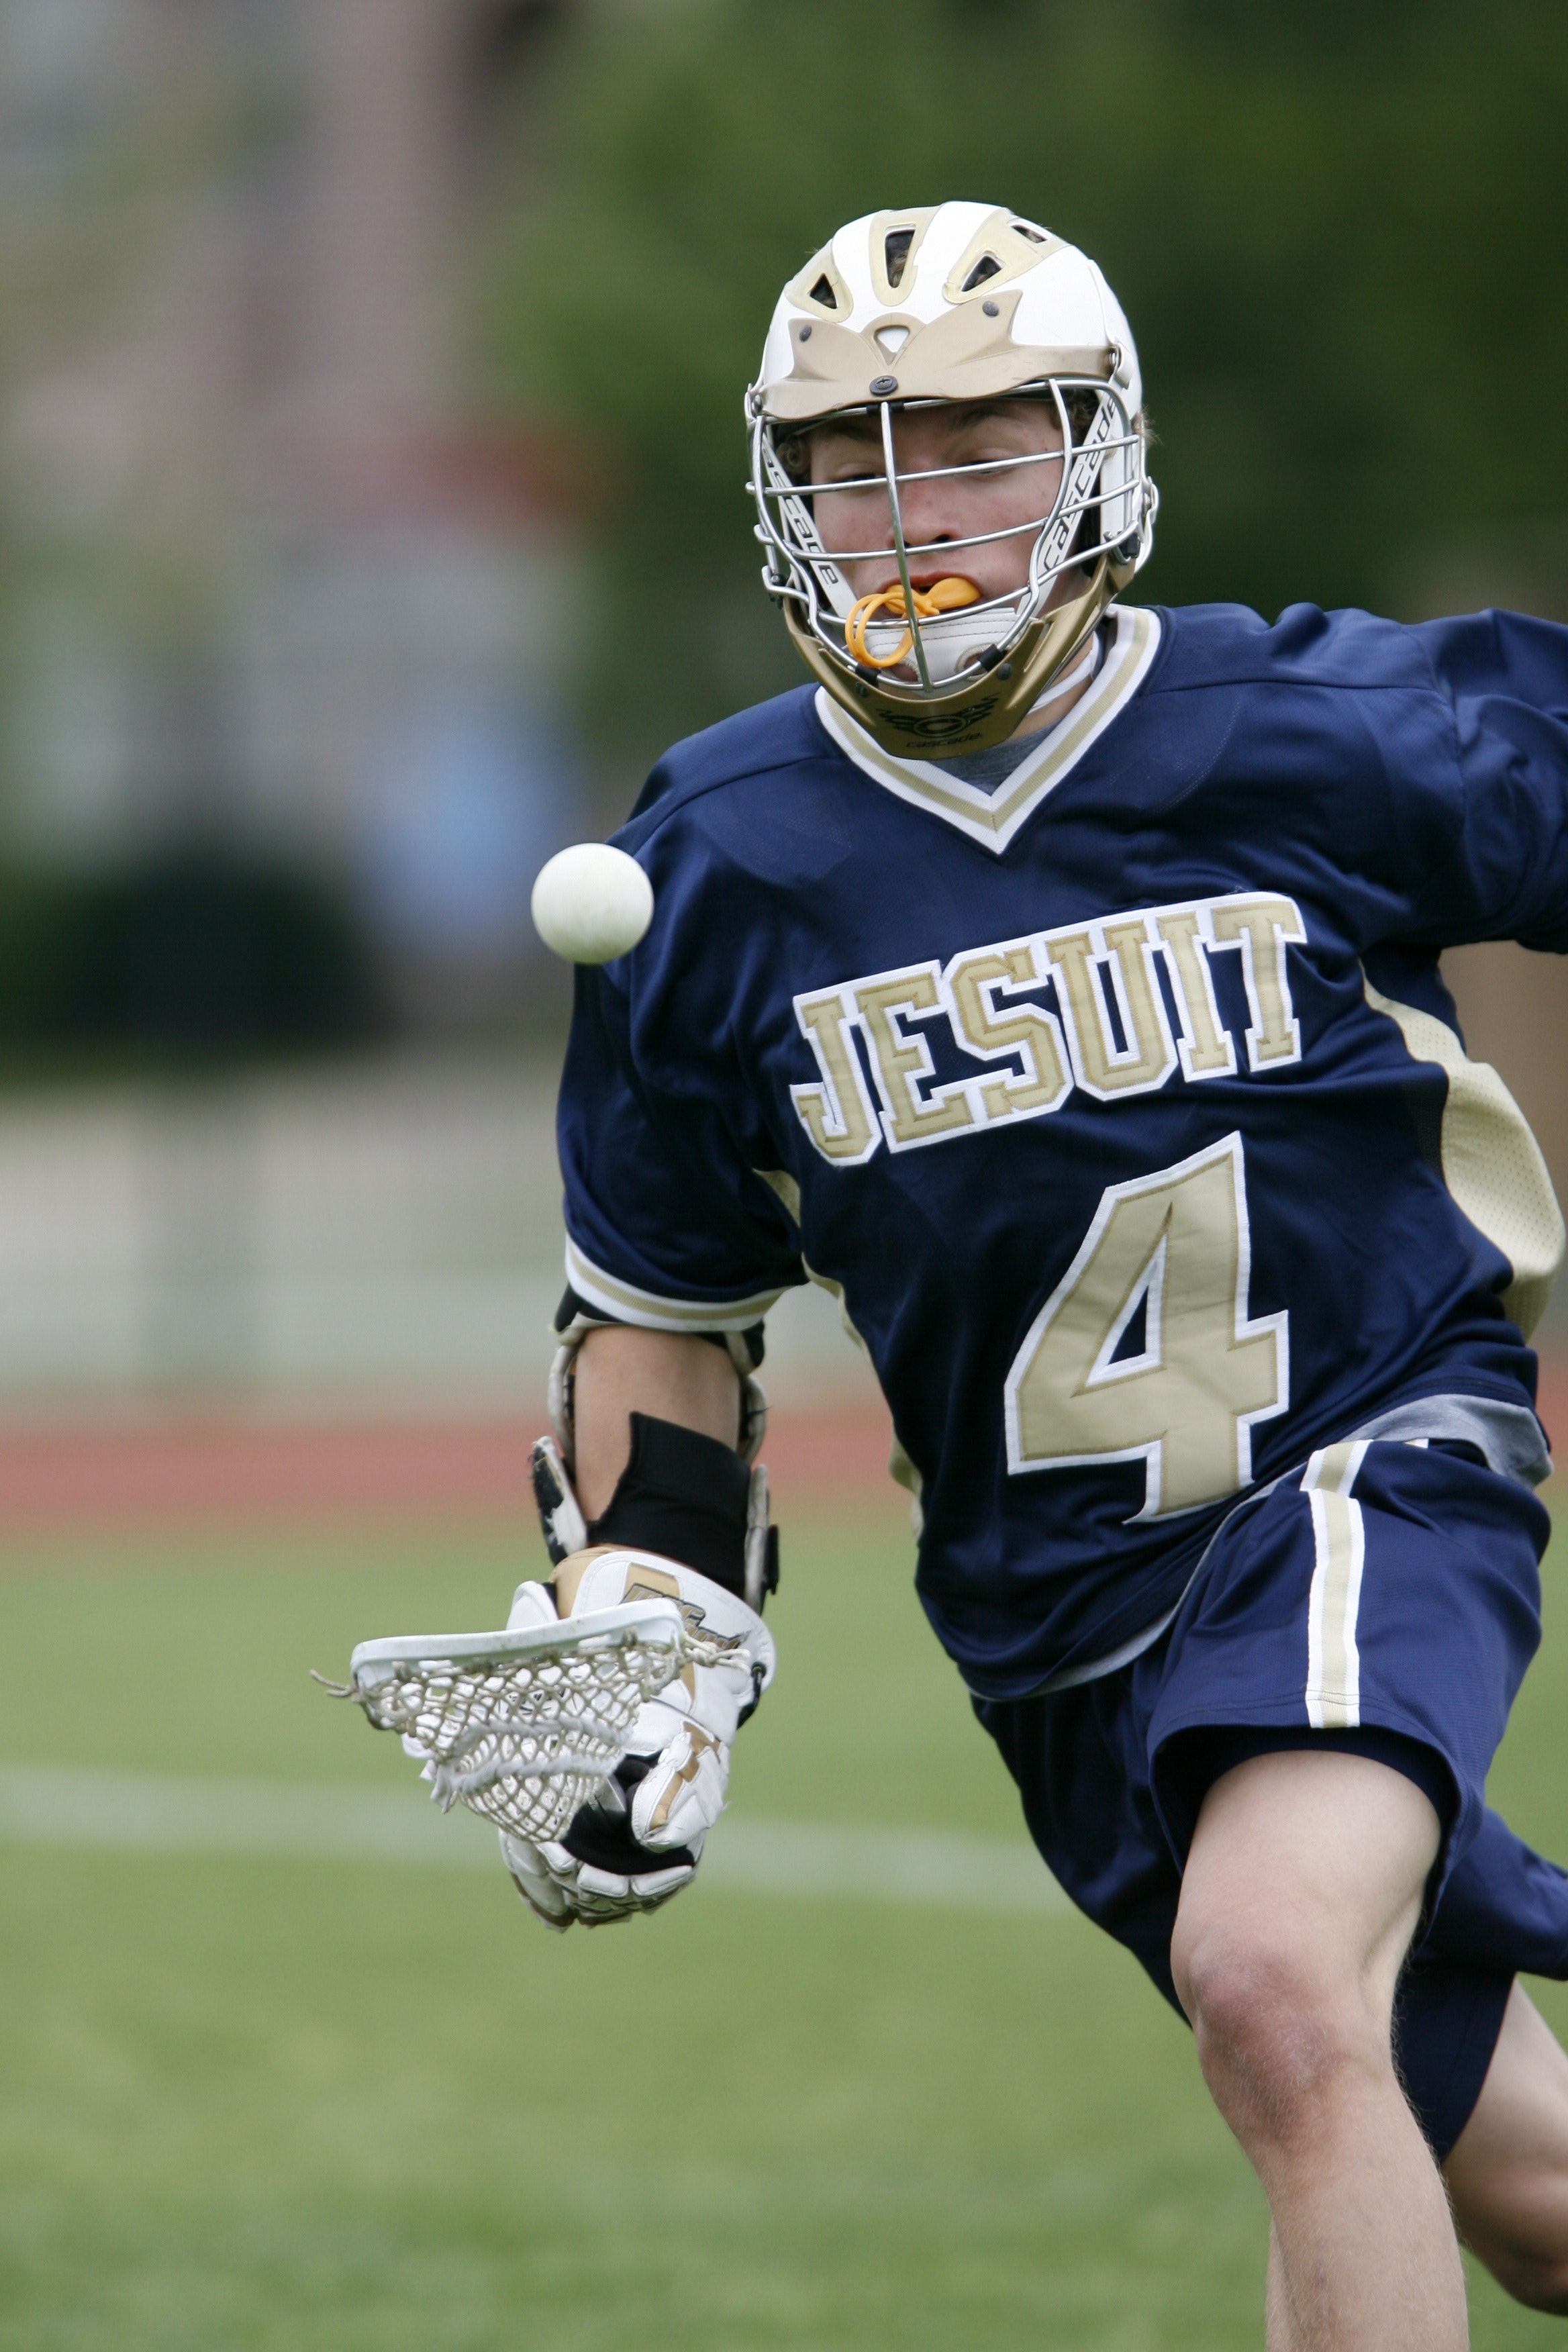 Man holding lacrosse stick running on field during daytime photo